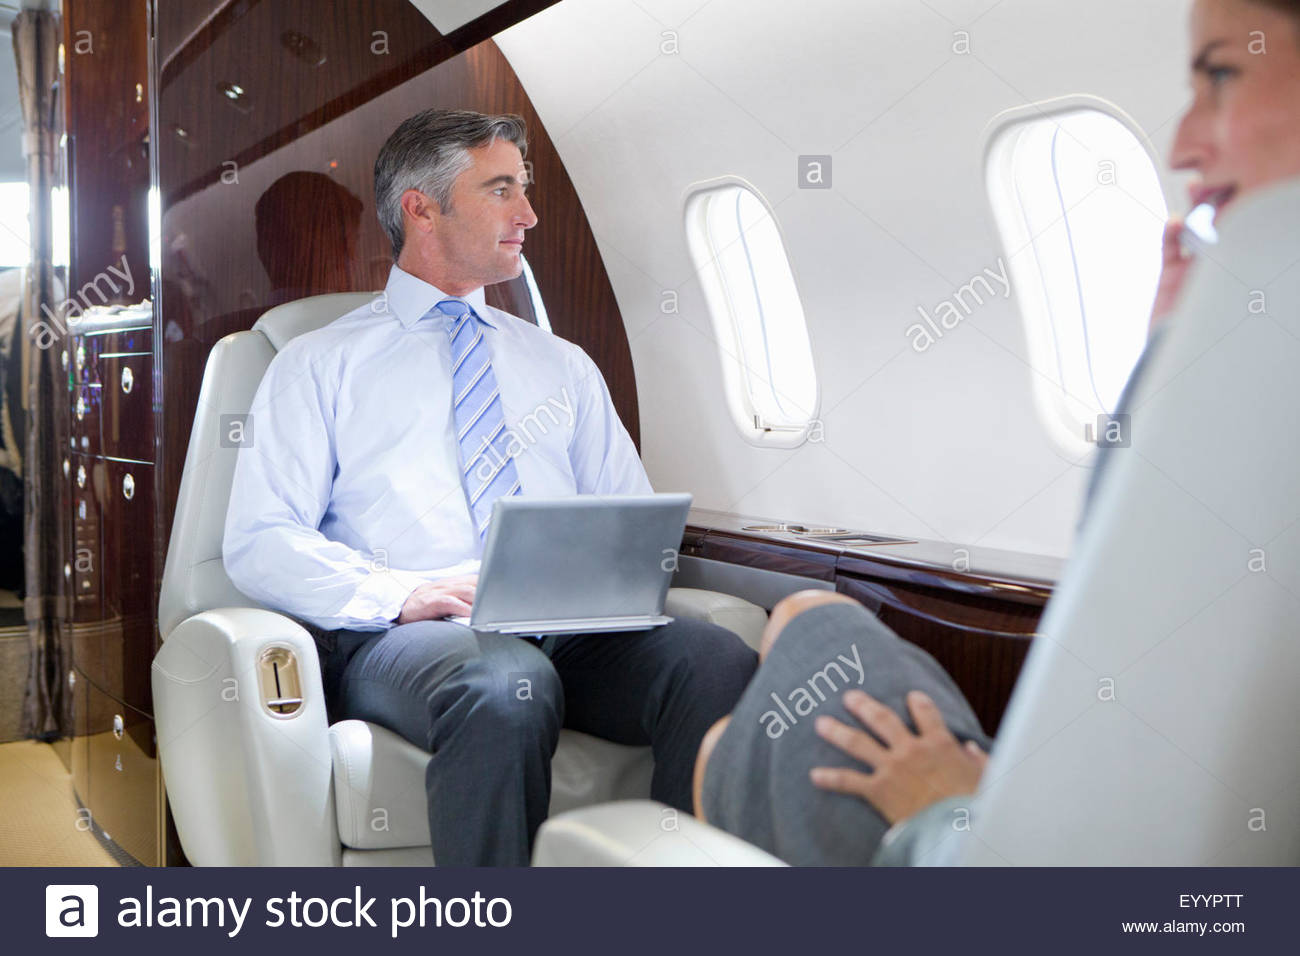 Businesswoman on phone and Businessman with digital tablet having meeting on private jet - Stock Image